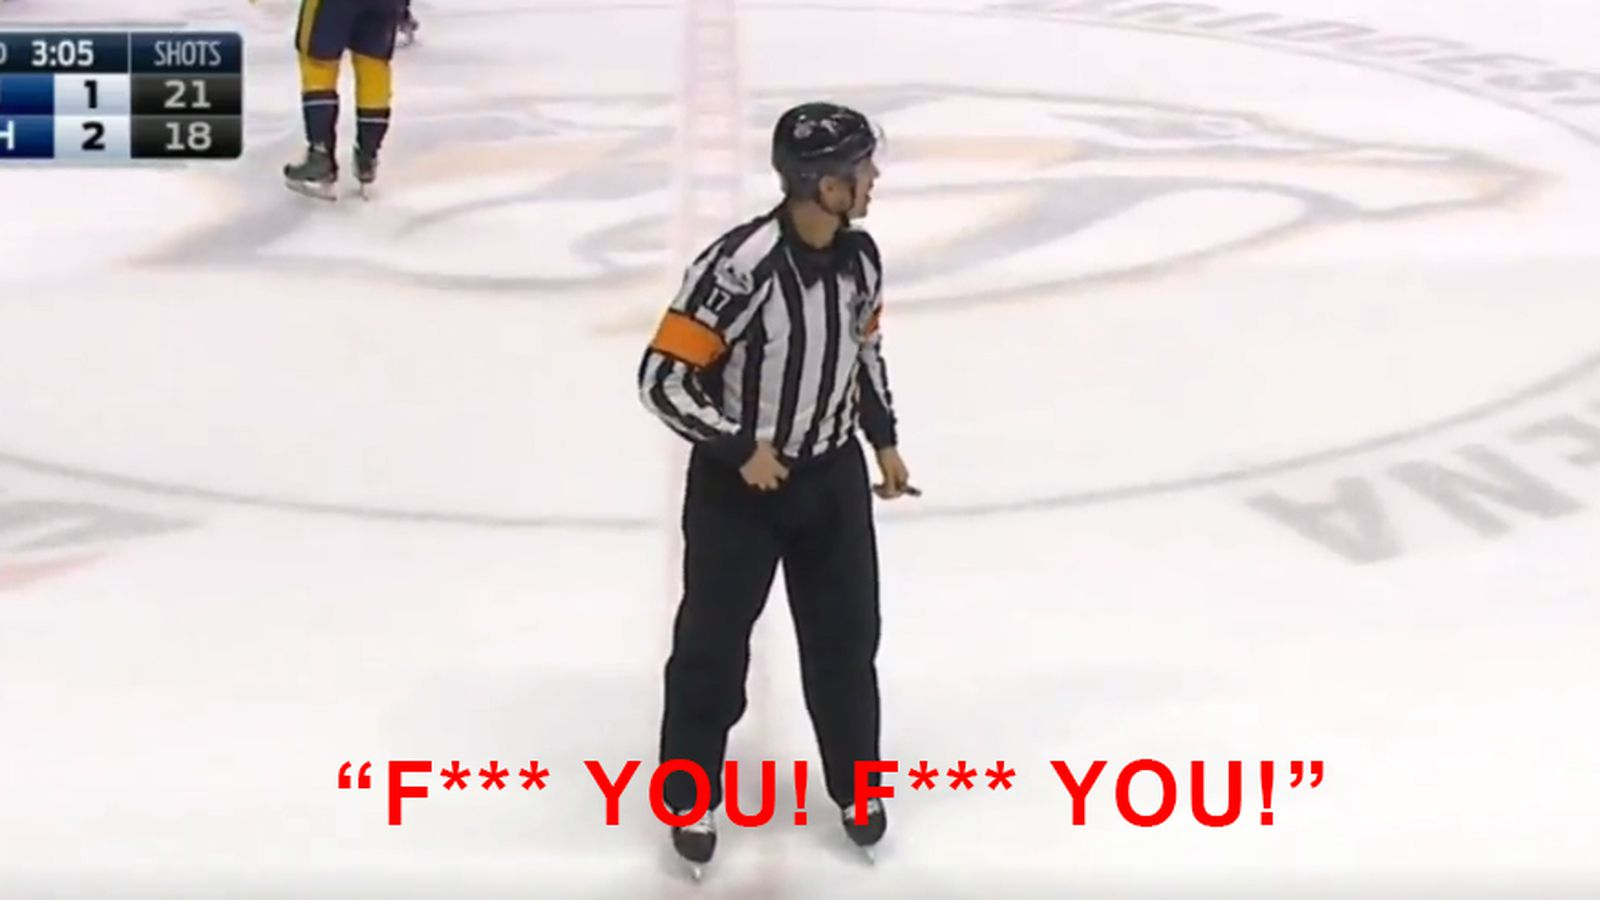 NHL referee delays announcing penalty to yell 'F*** YOU! F*** YOU!' at someone